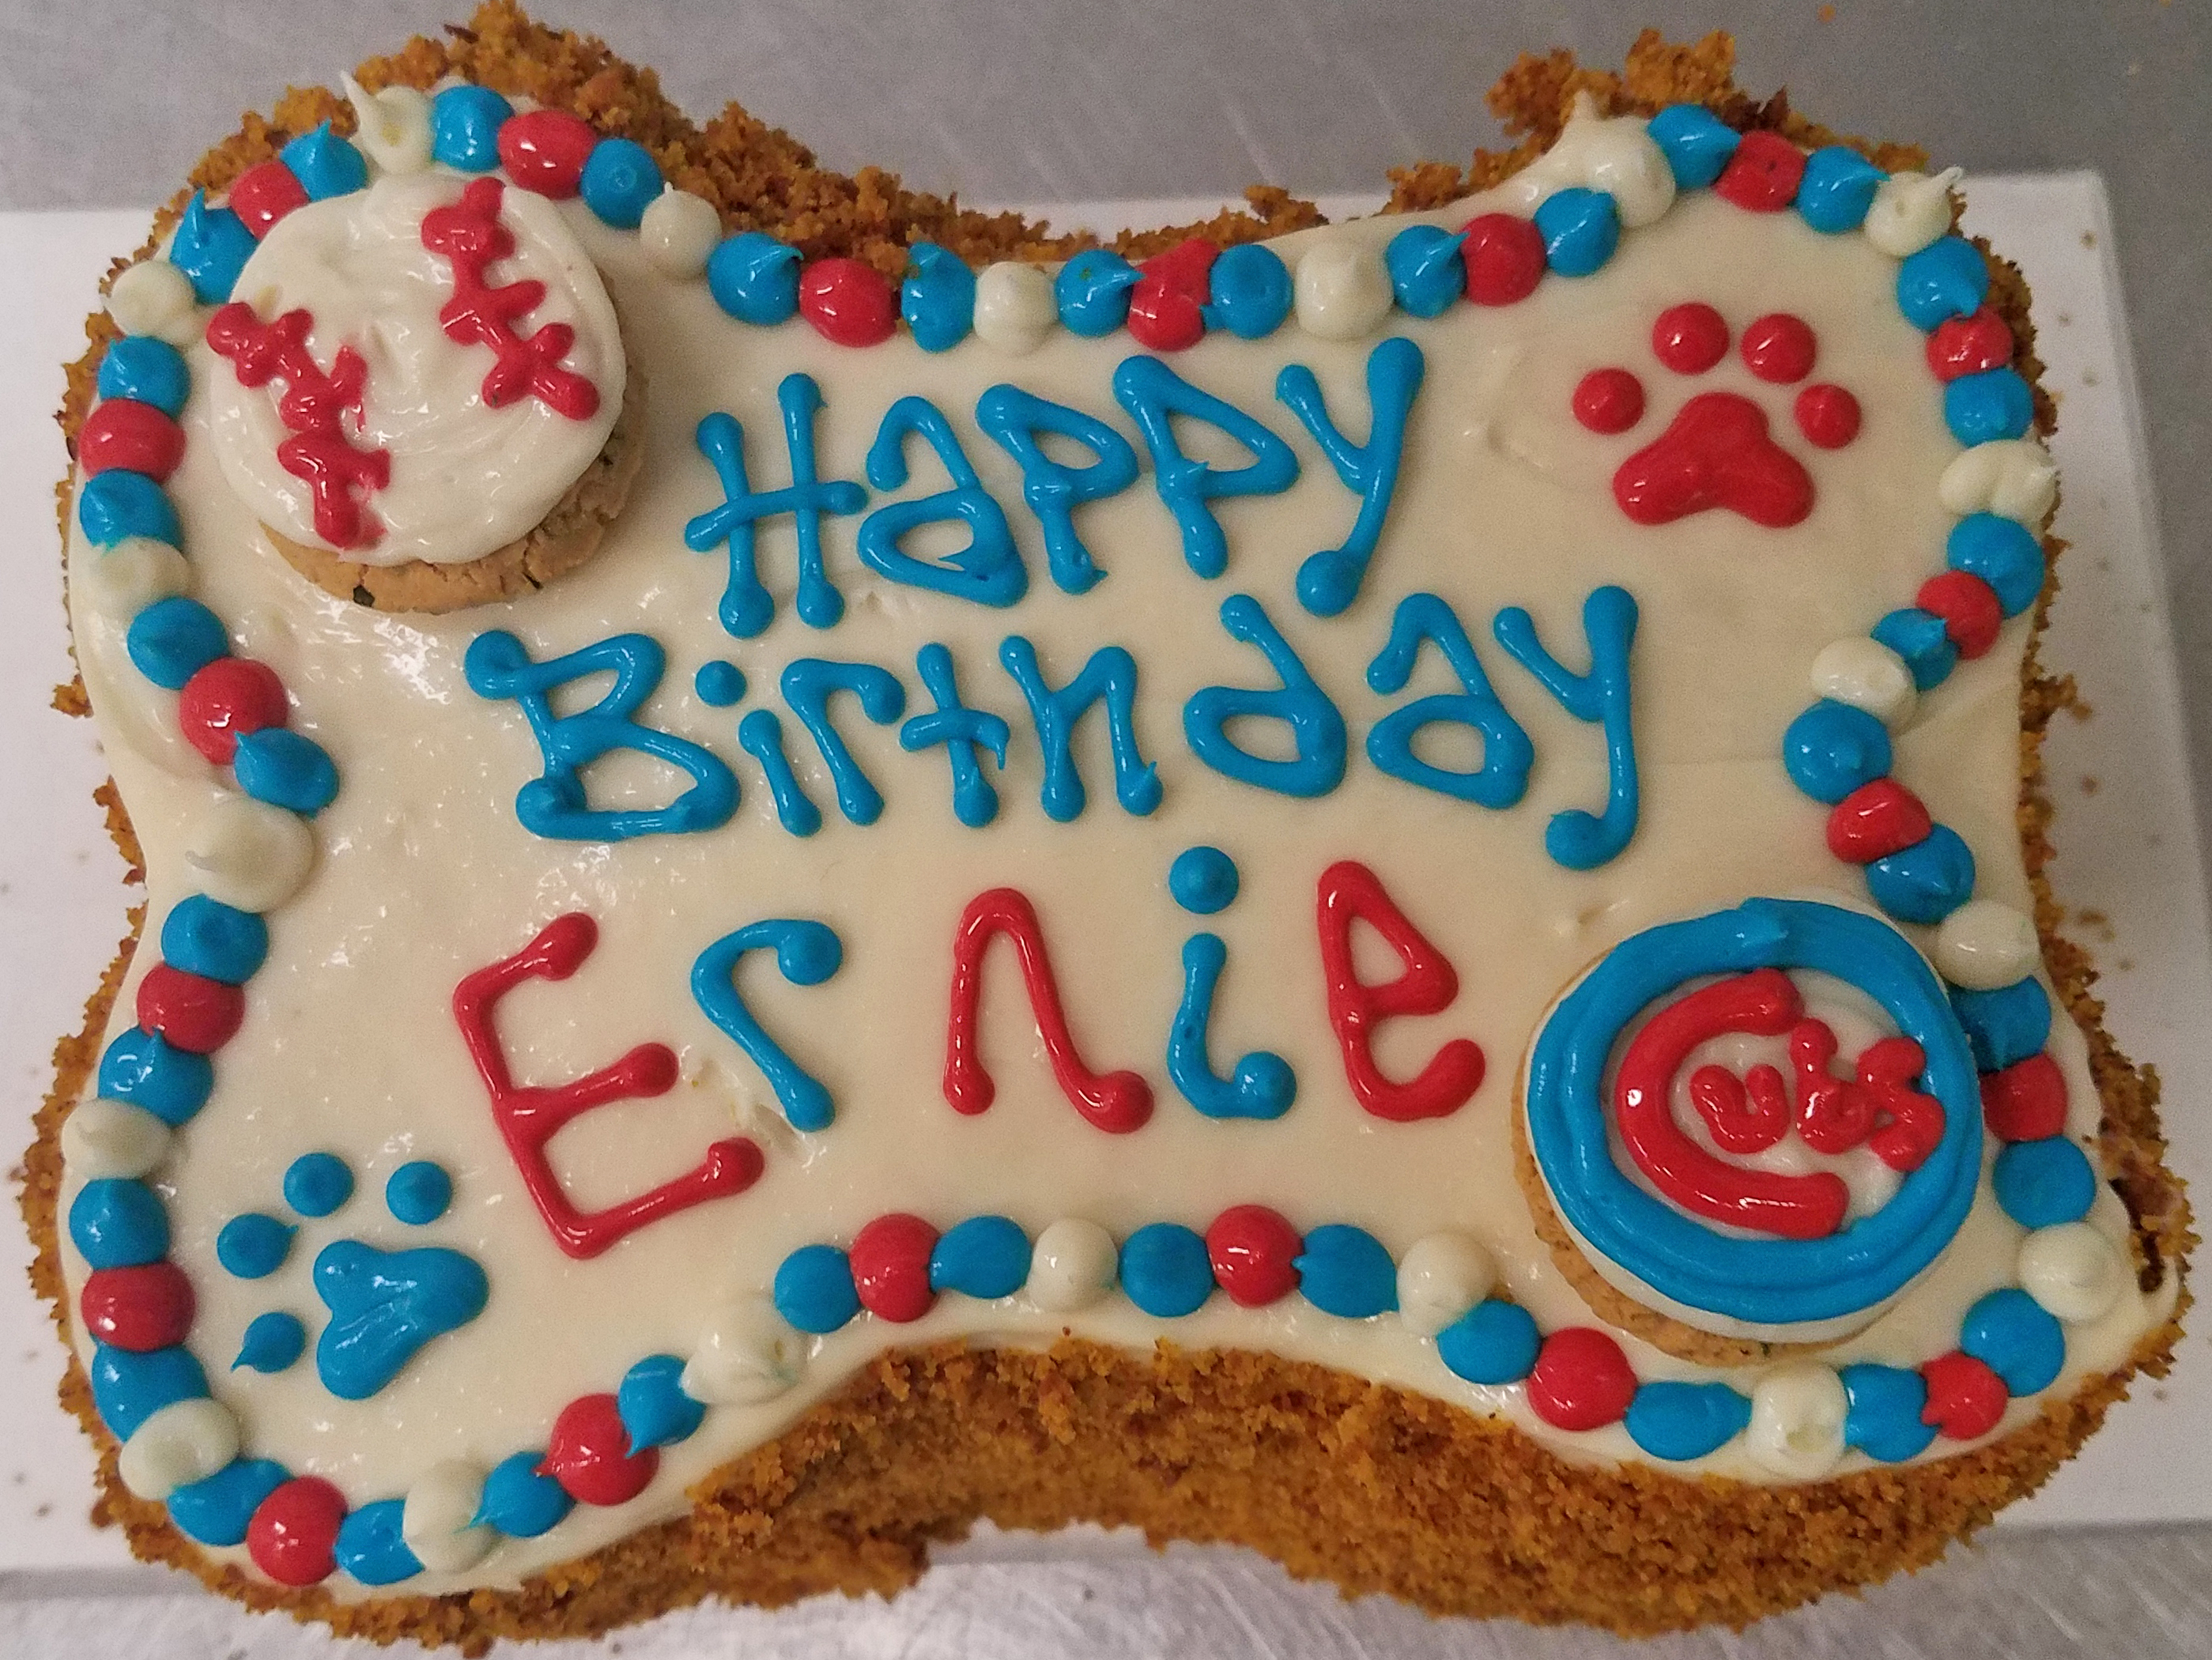 You Have Found The Premier Dog Birthday Cake Company In Chicagoland Area We Also Ship Cakes To Most Of US If Need A Celebration